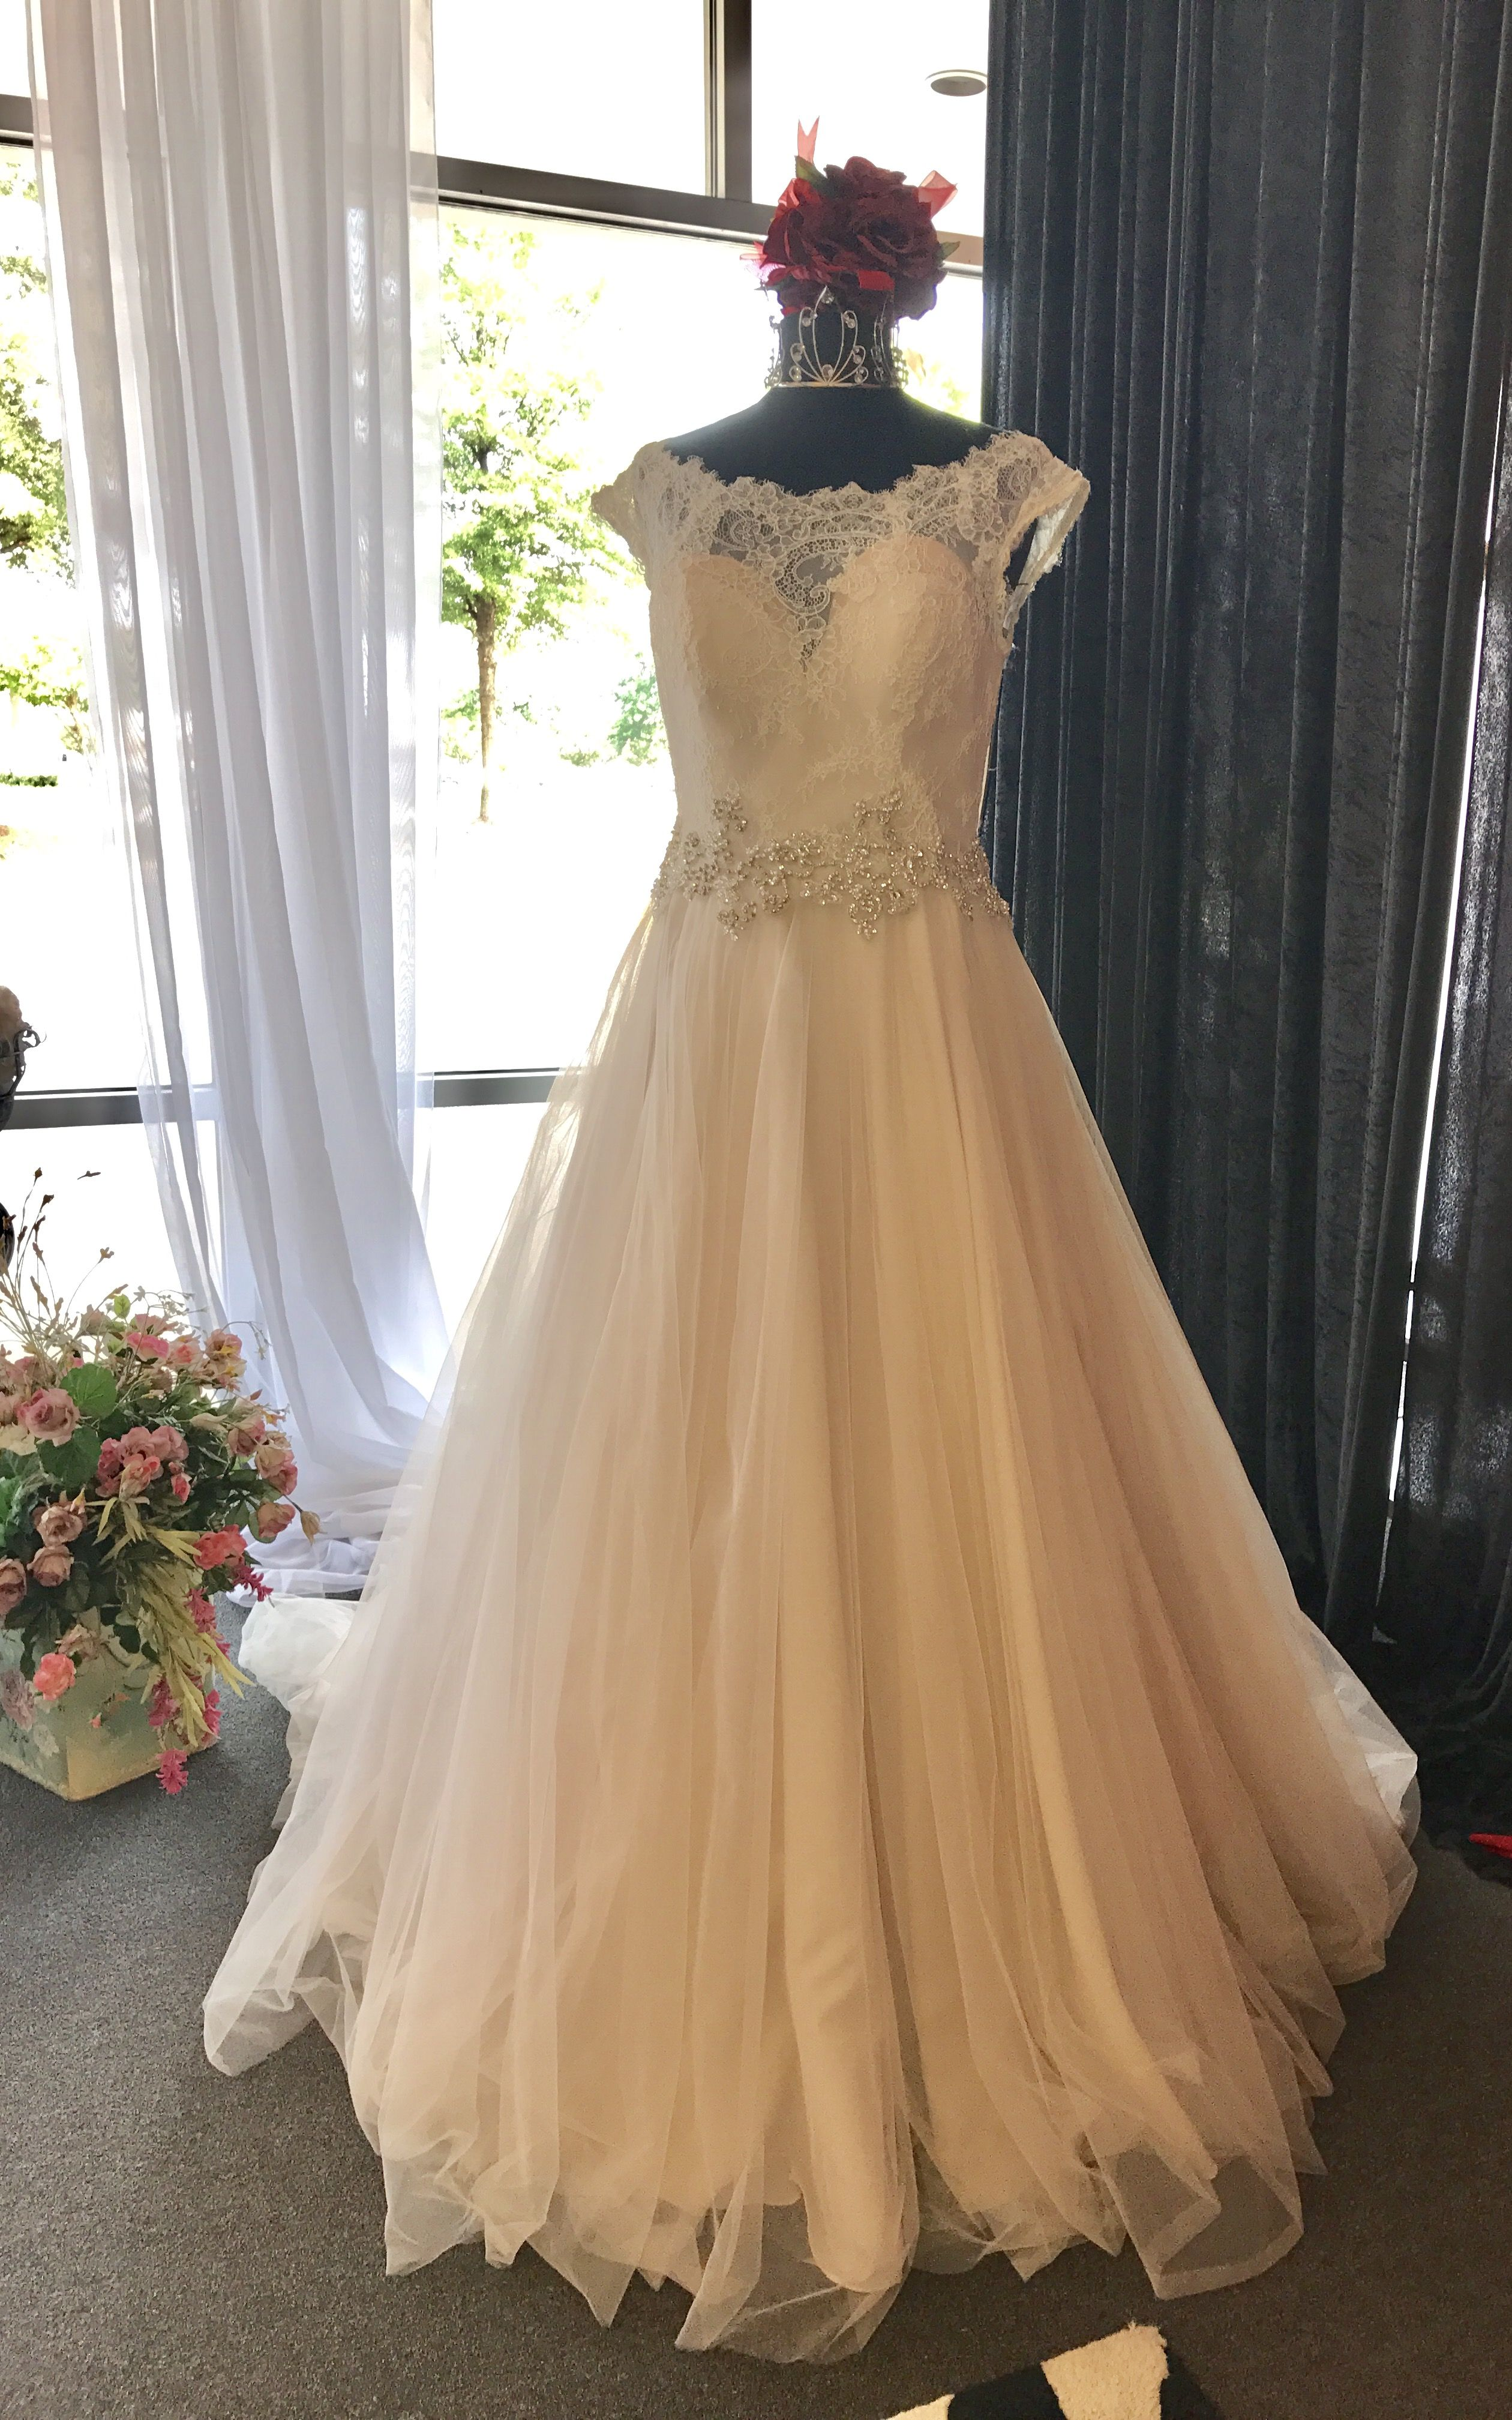 Soft elegant feminine and romantic this gown is really special